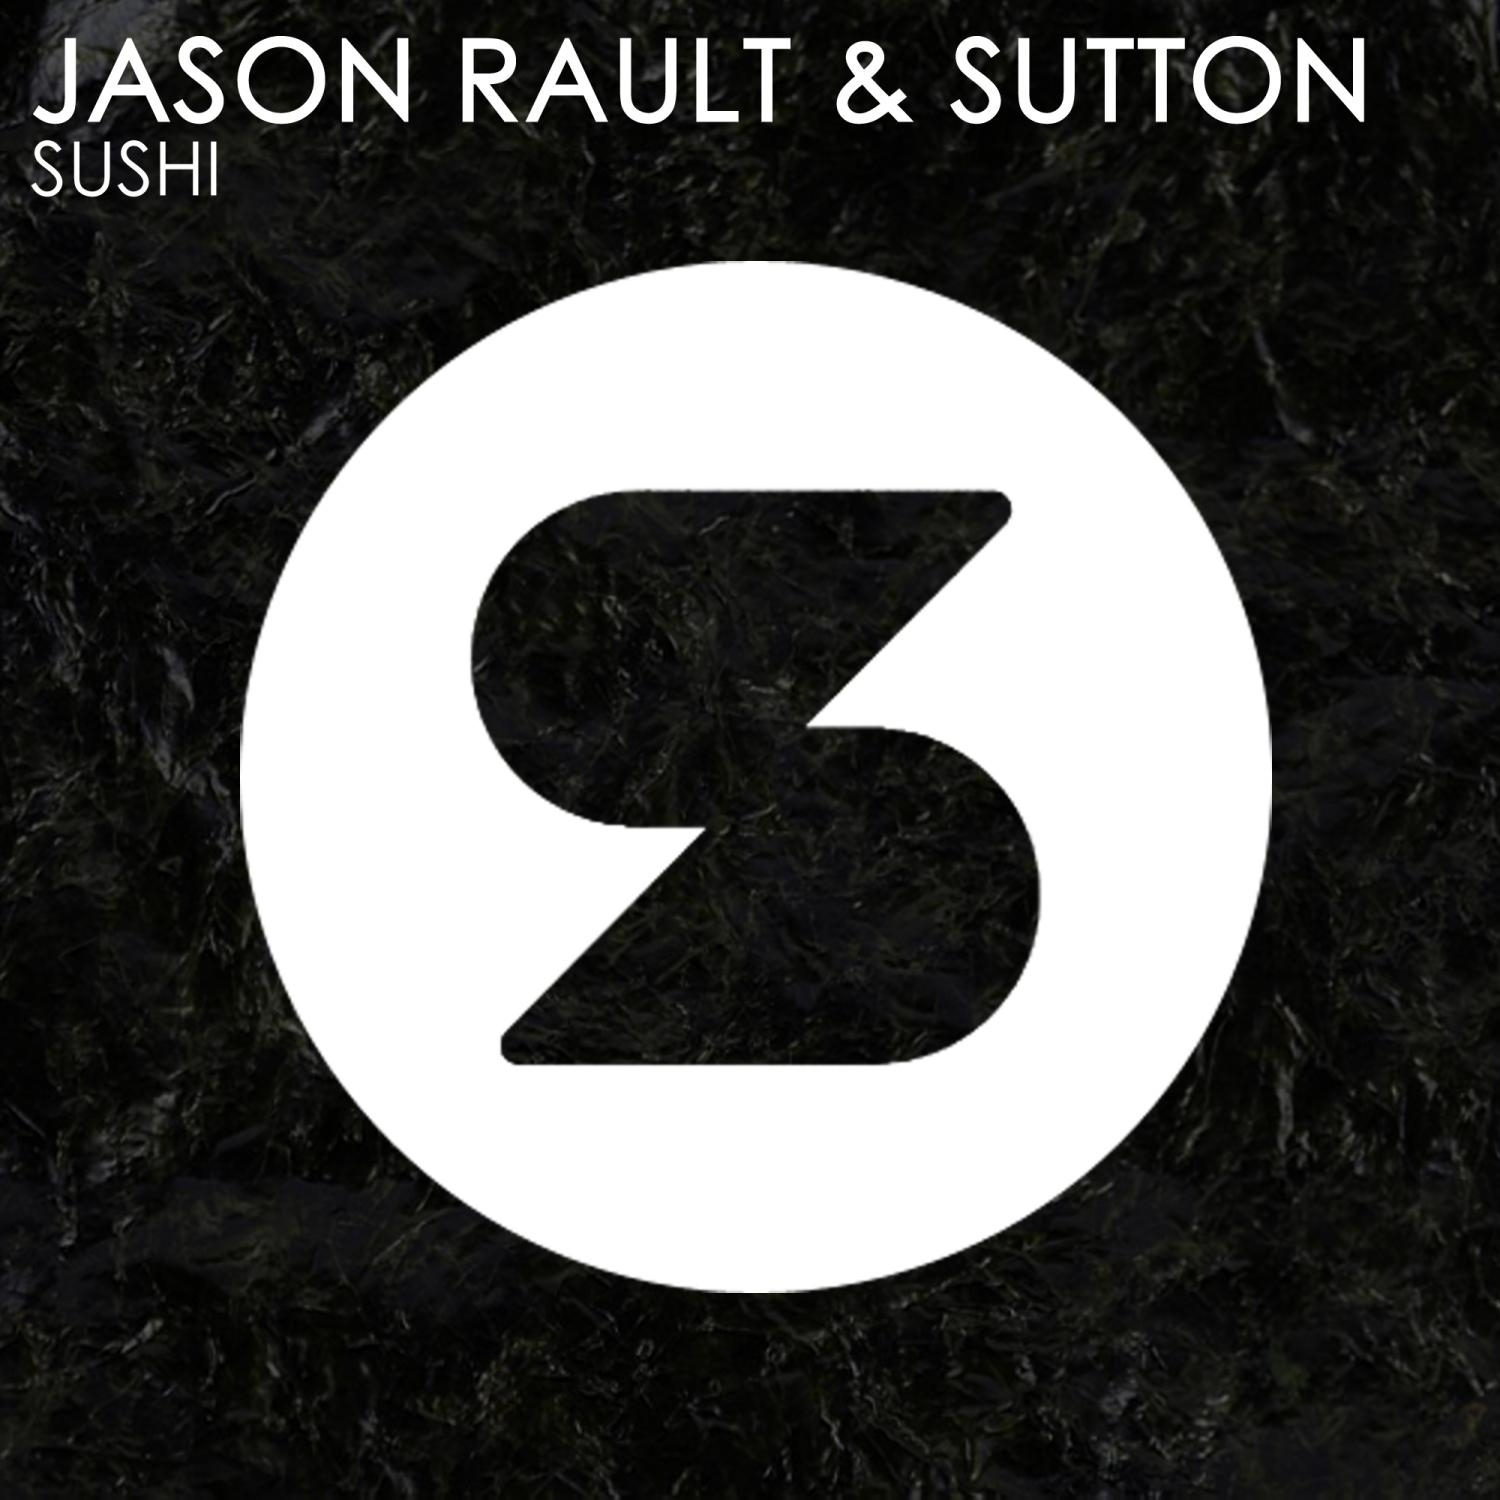 Jason Rault, Sutton - Sushi (Vox Mix)